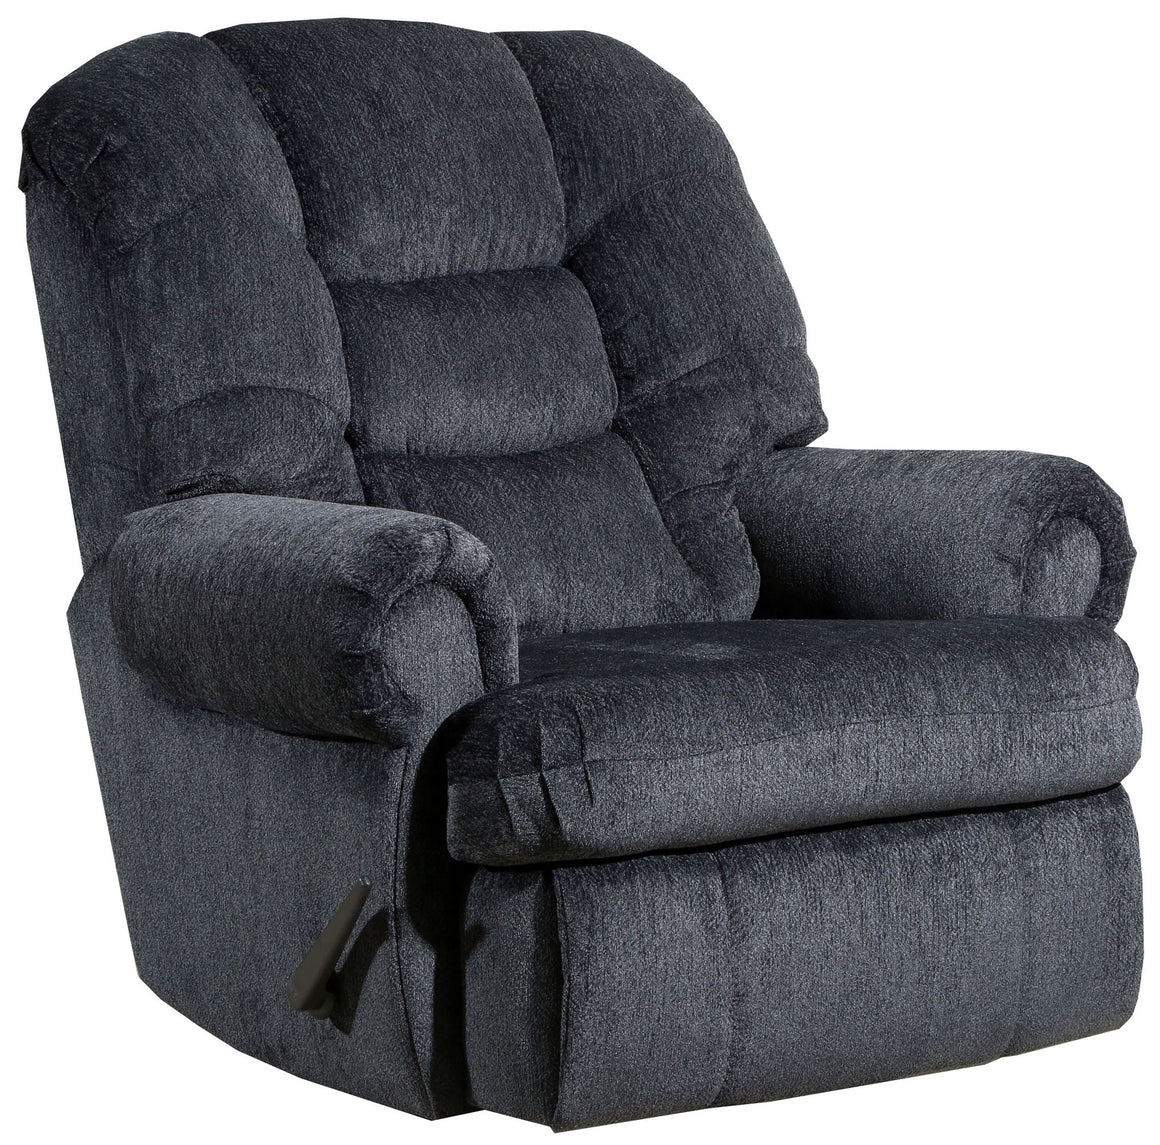 4501 Comfort King Chaise Wallsaver Recliner - Charcoal